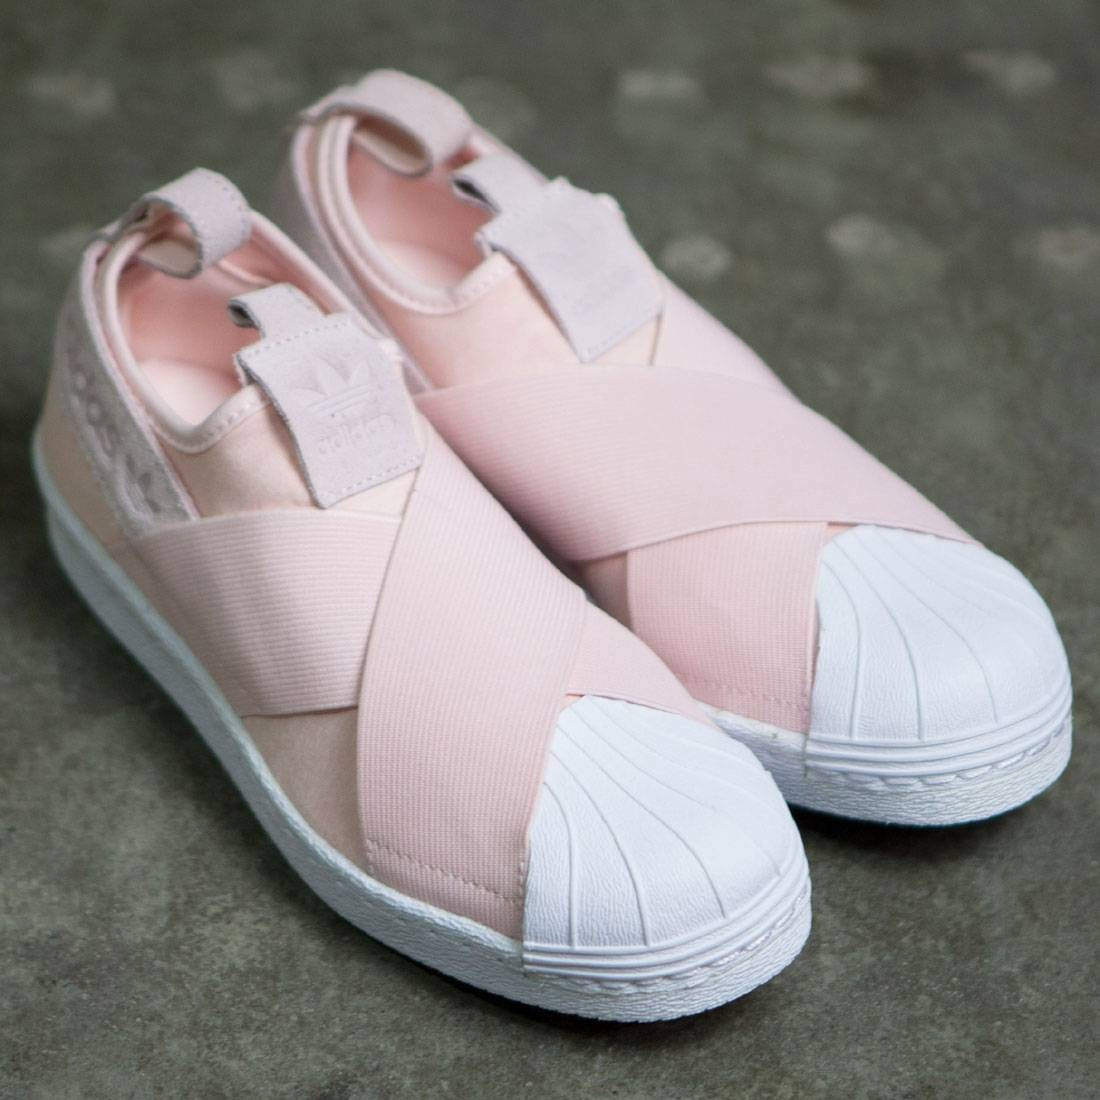 adidas superstar slip on women